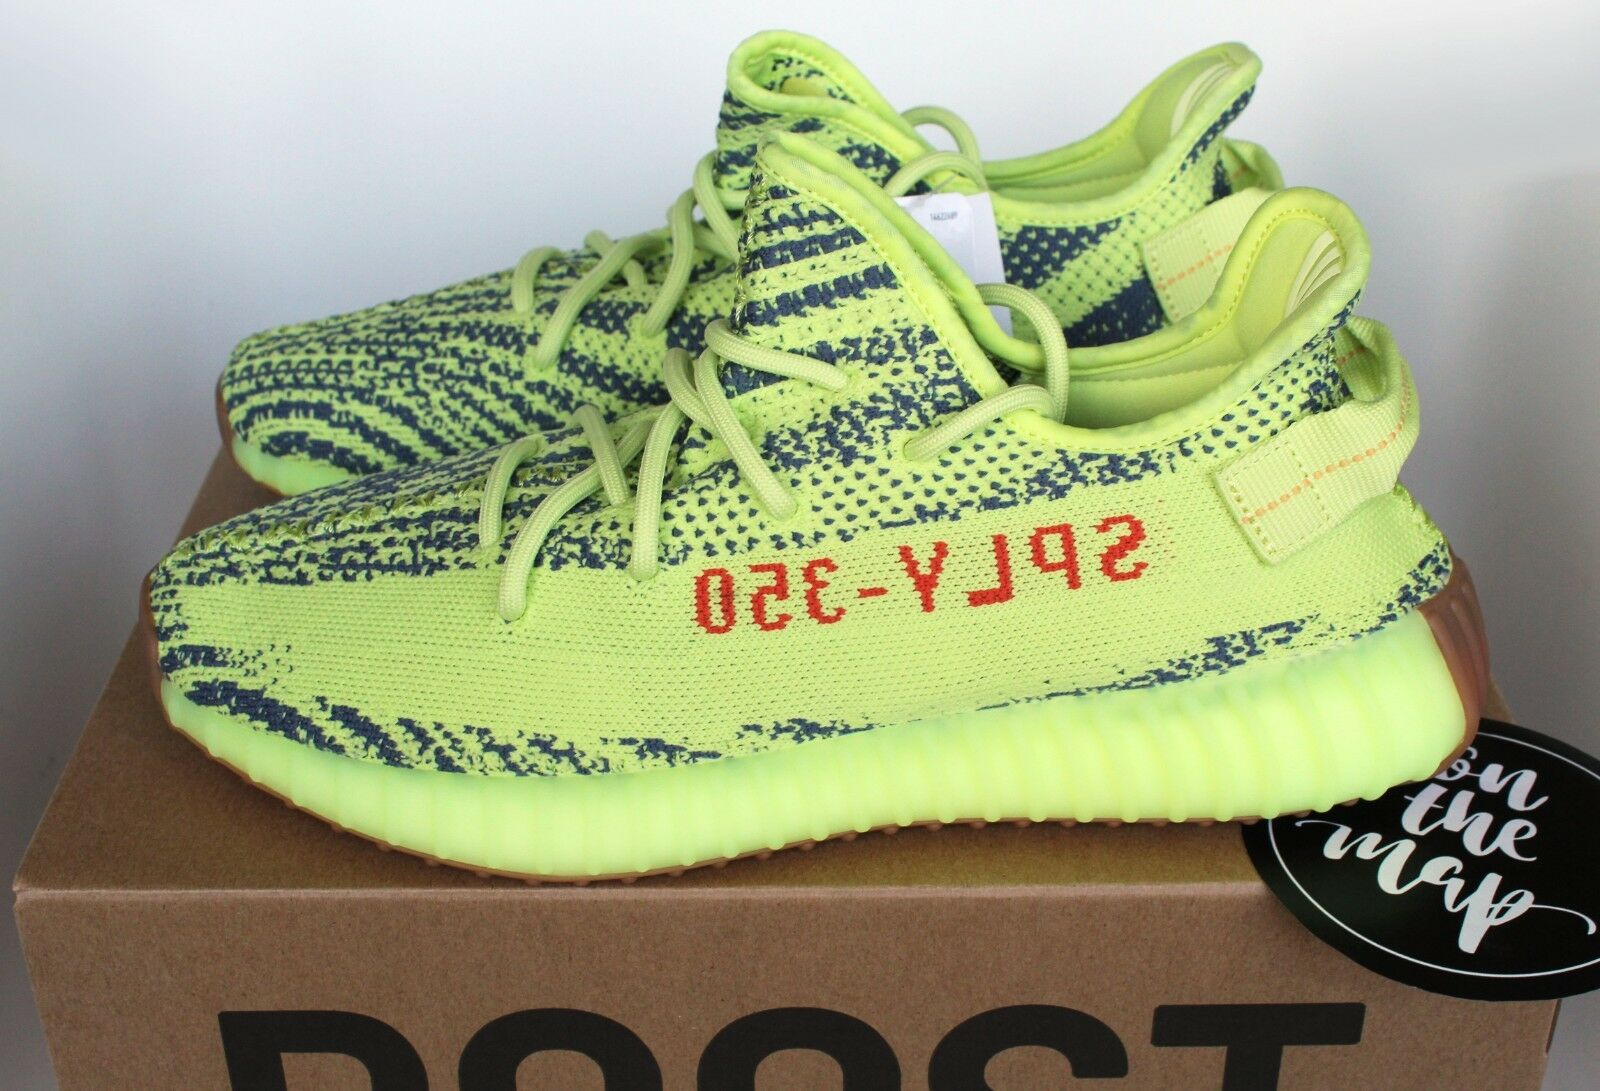 fa4c388d8be5e Adidas Yeezy Boost 350 V2 Semi Frozen Yellow Green Yebra US New. Adidas  UltraBoost ...